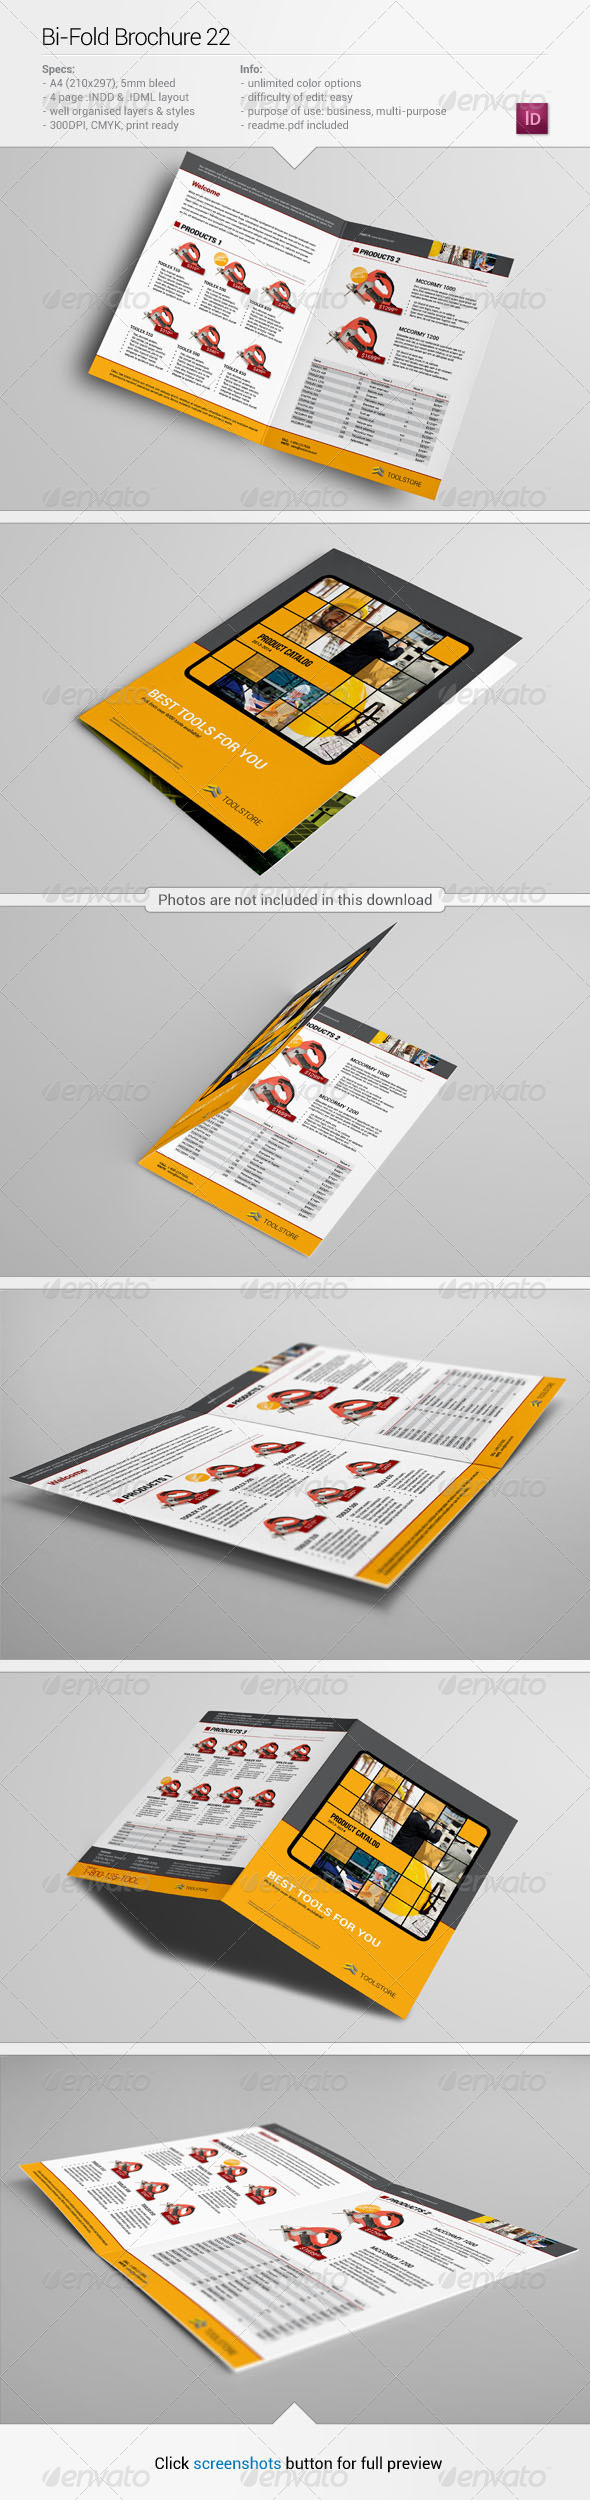 GraphicRiver Bi-Fold Brochure 22 5704682